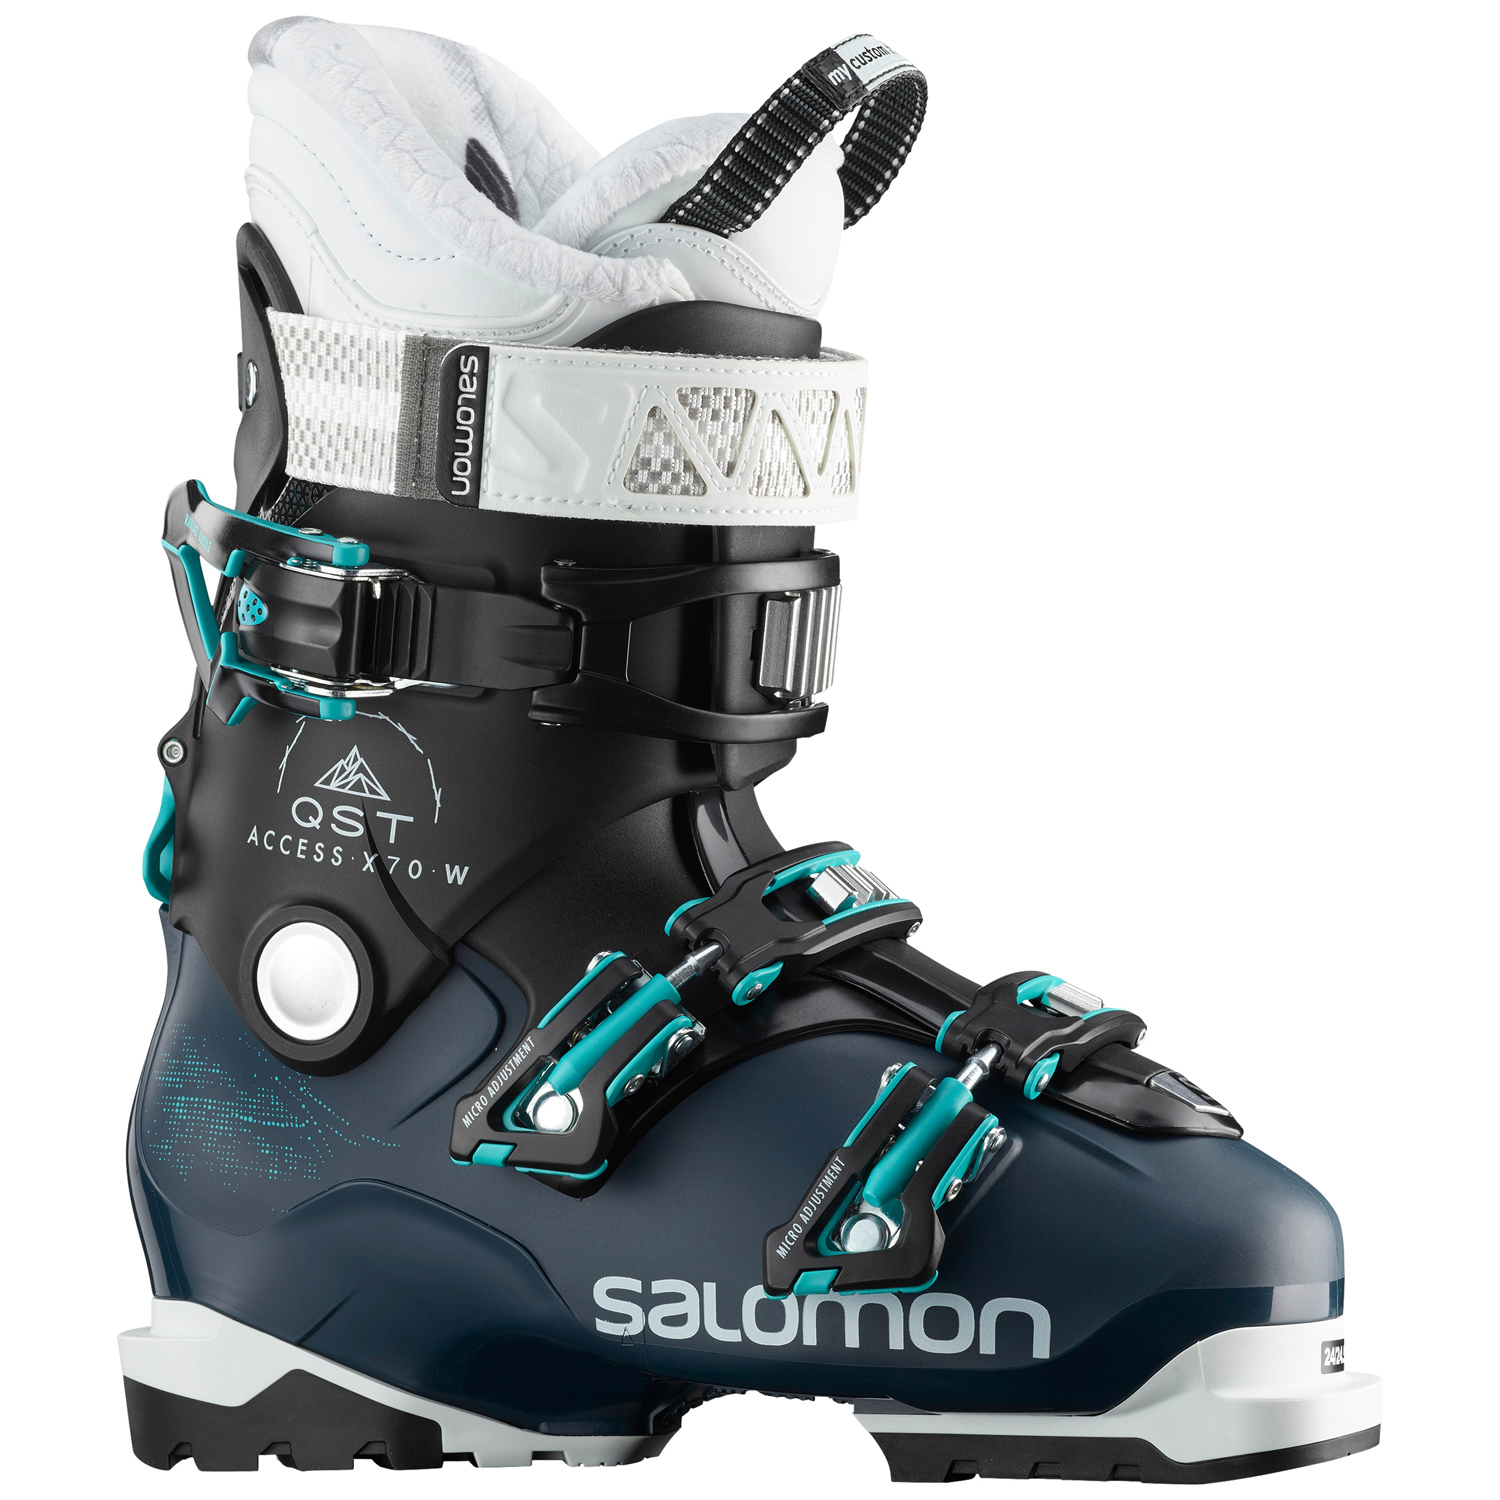 Salomon QST Access X70 W Damen Skischuhe